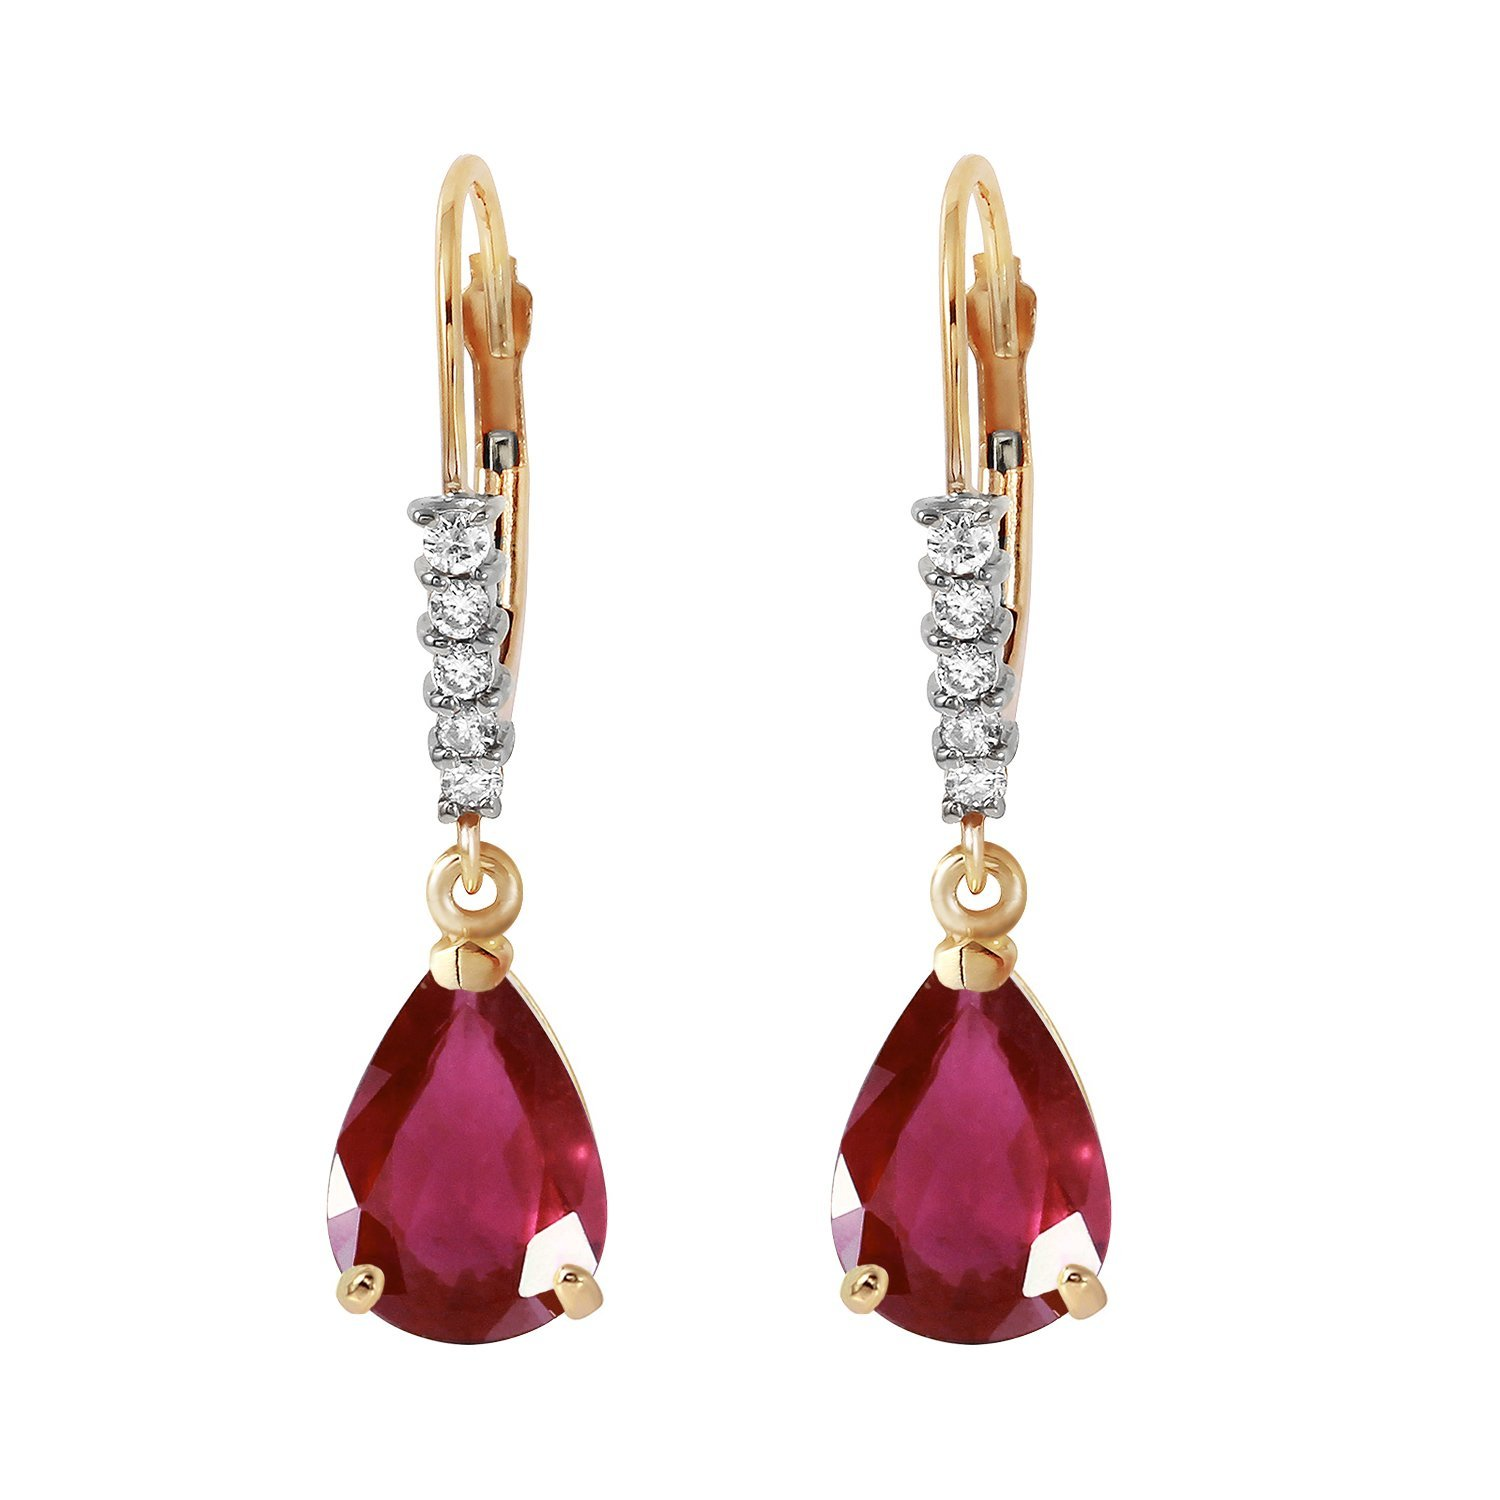 3.15 Carat 14k Solid Gold Leverback Earrings with Natural Diamonds and Rubies by Galaxy Gold (Image #2)